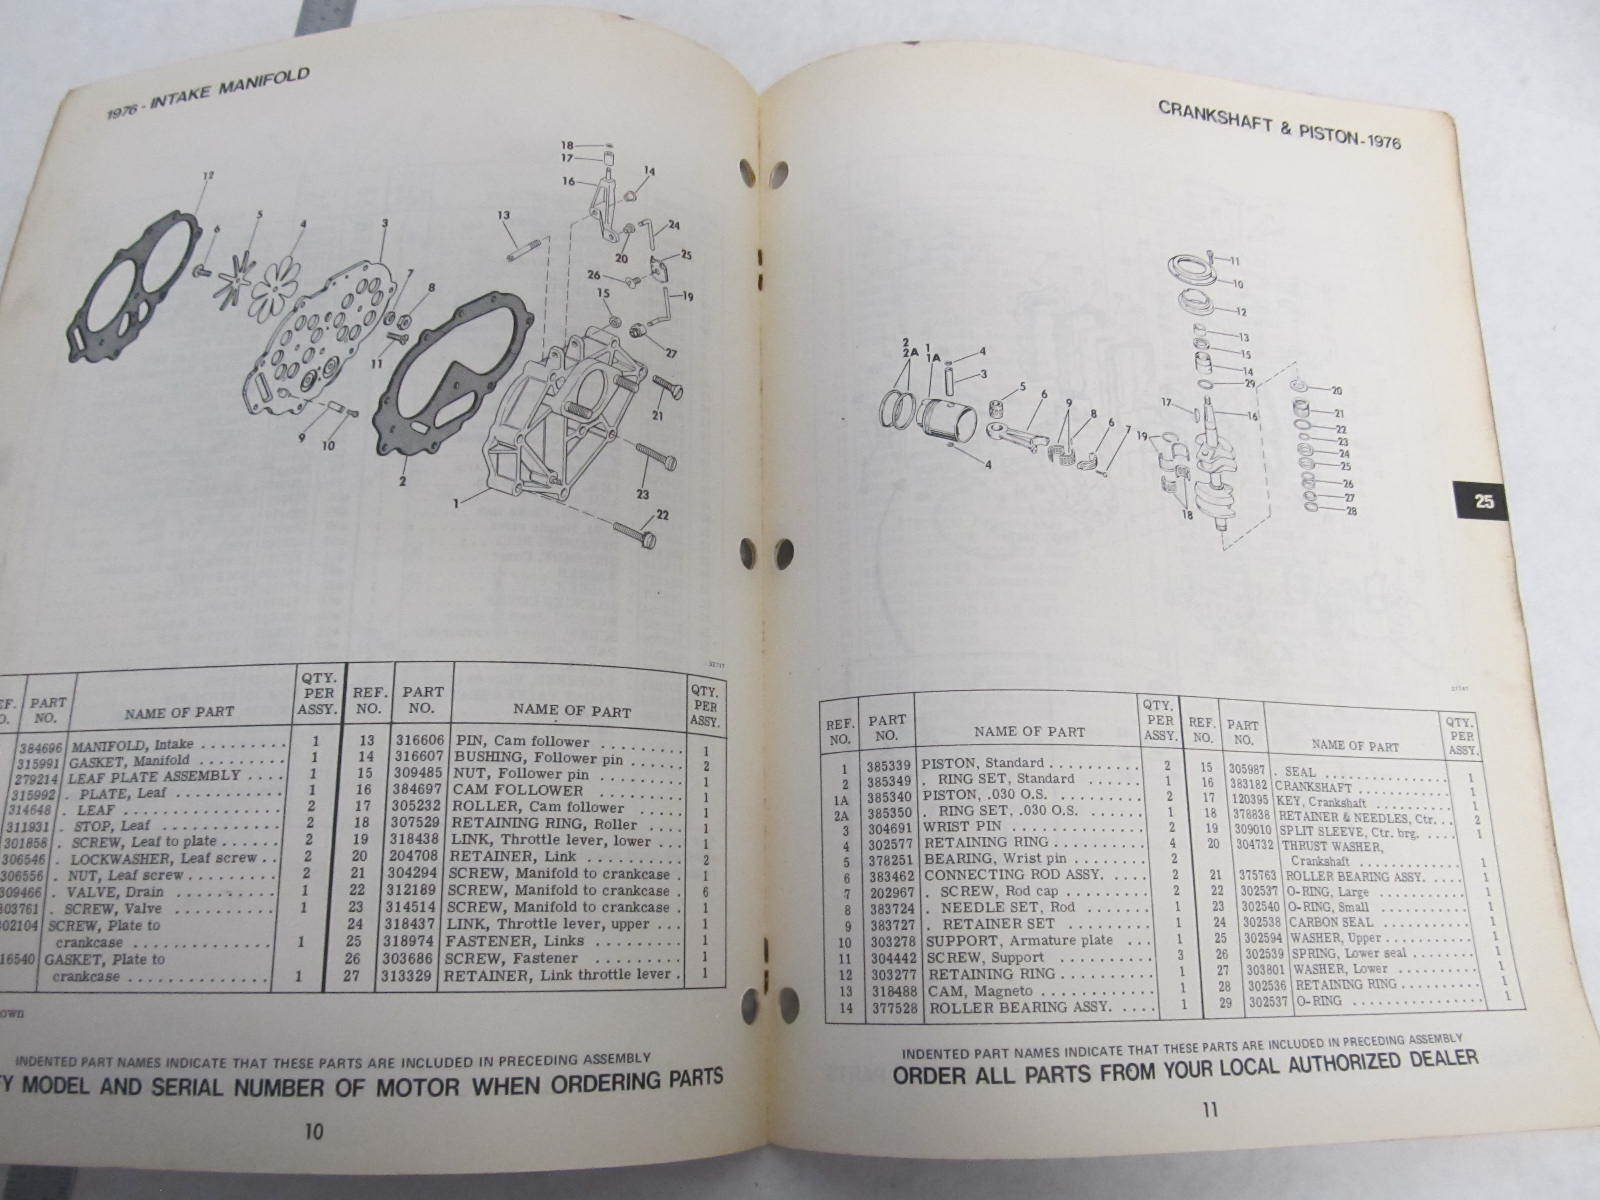 hight resolution of 1976 5 5 hp evinrude wiring diagram ventaconsultiva co parts sale propellers lower units replies thread title forum title related links mercury